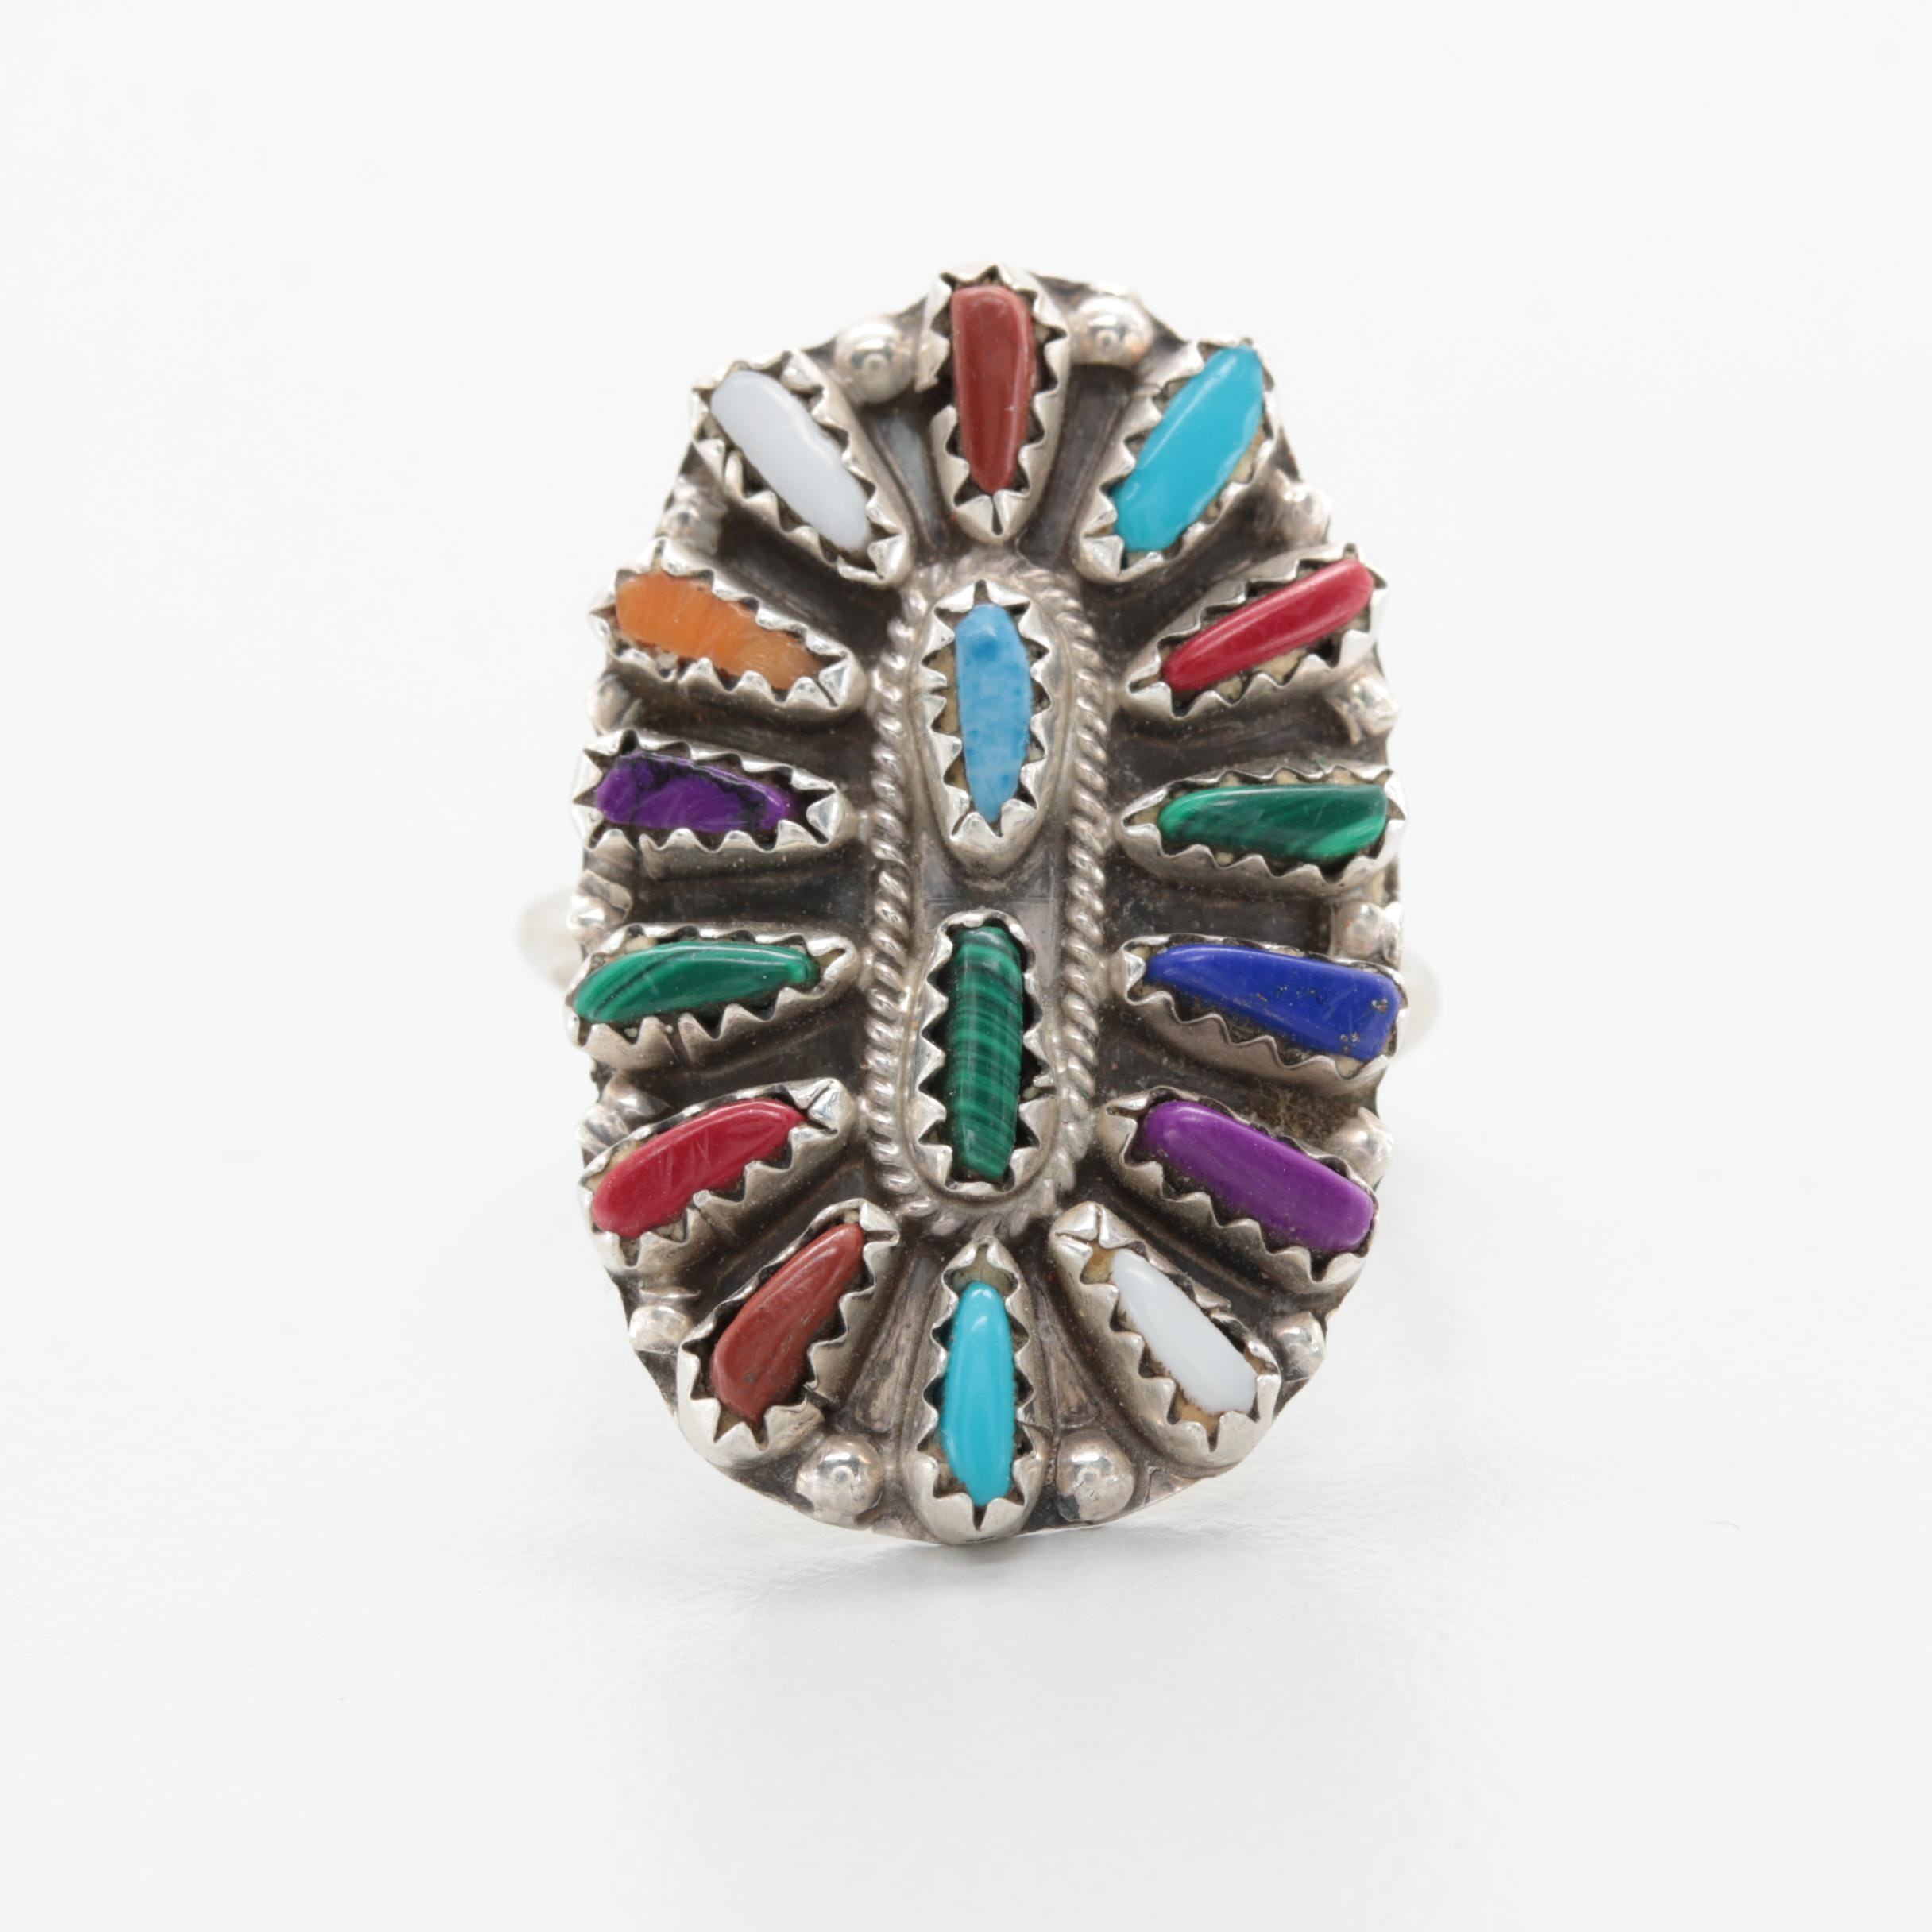 Violet Begay Navajo Sterling Silver Ring with Coral, Malachite, and Lapis Lazuli